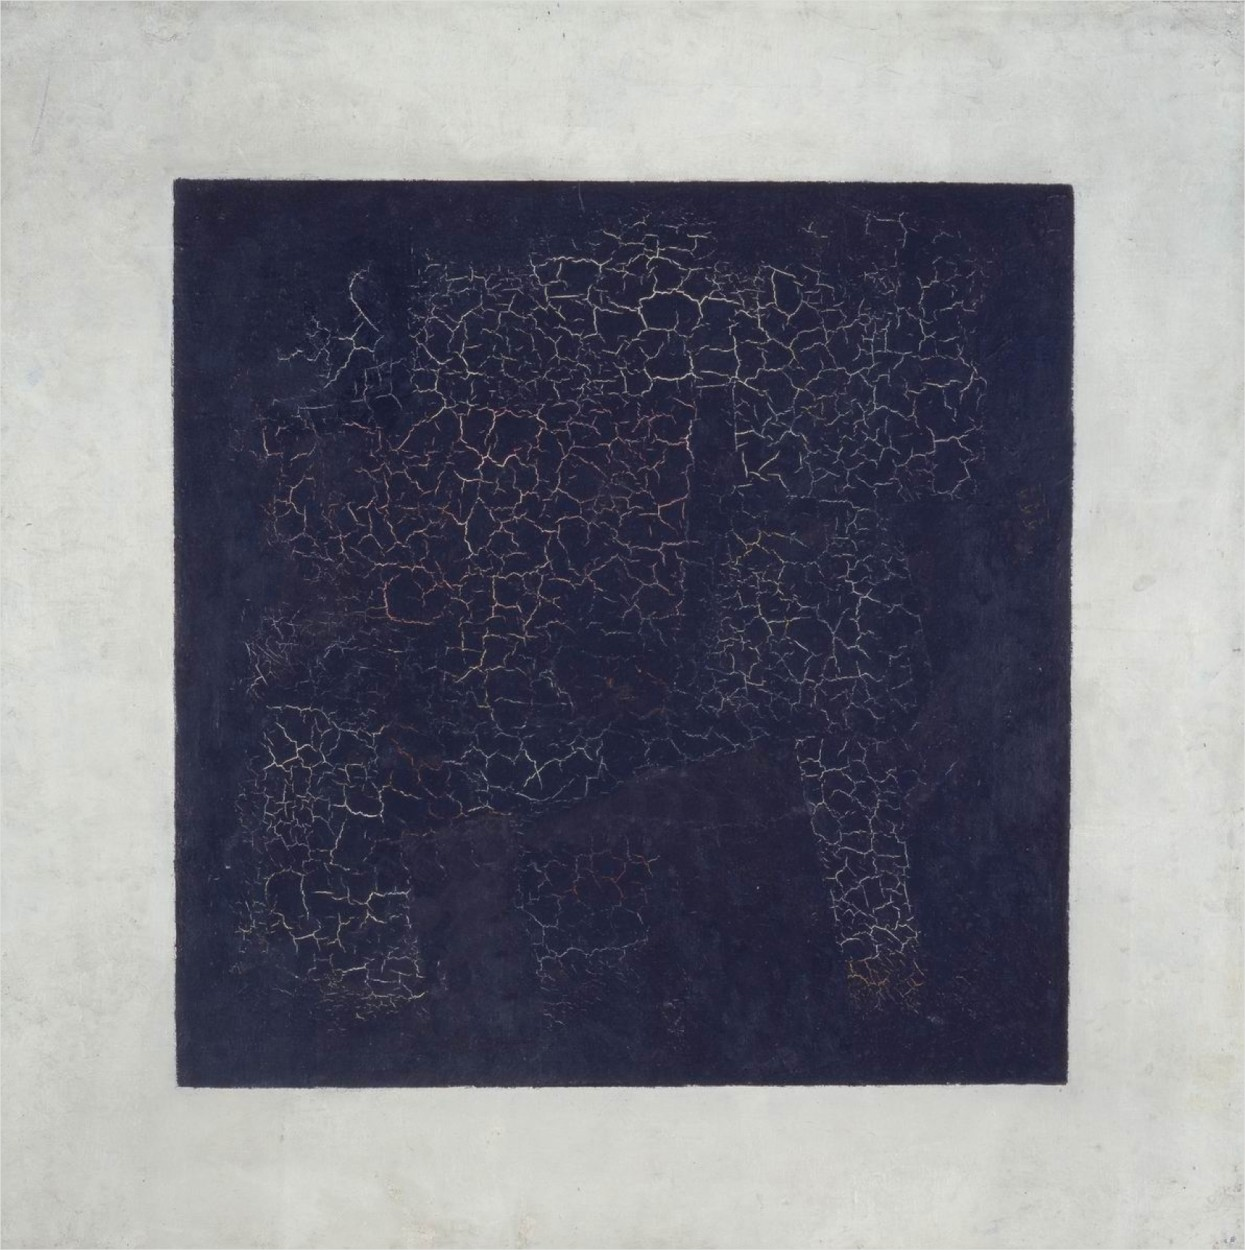 Black Square by Kazimir Malevich via DailyArt app, your daily dose of art getdailyart.com